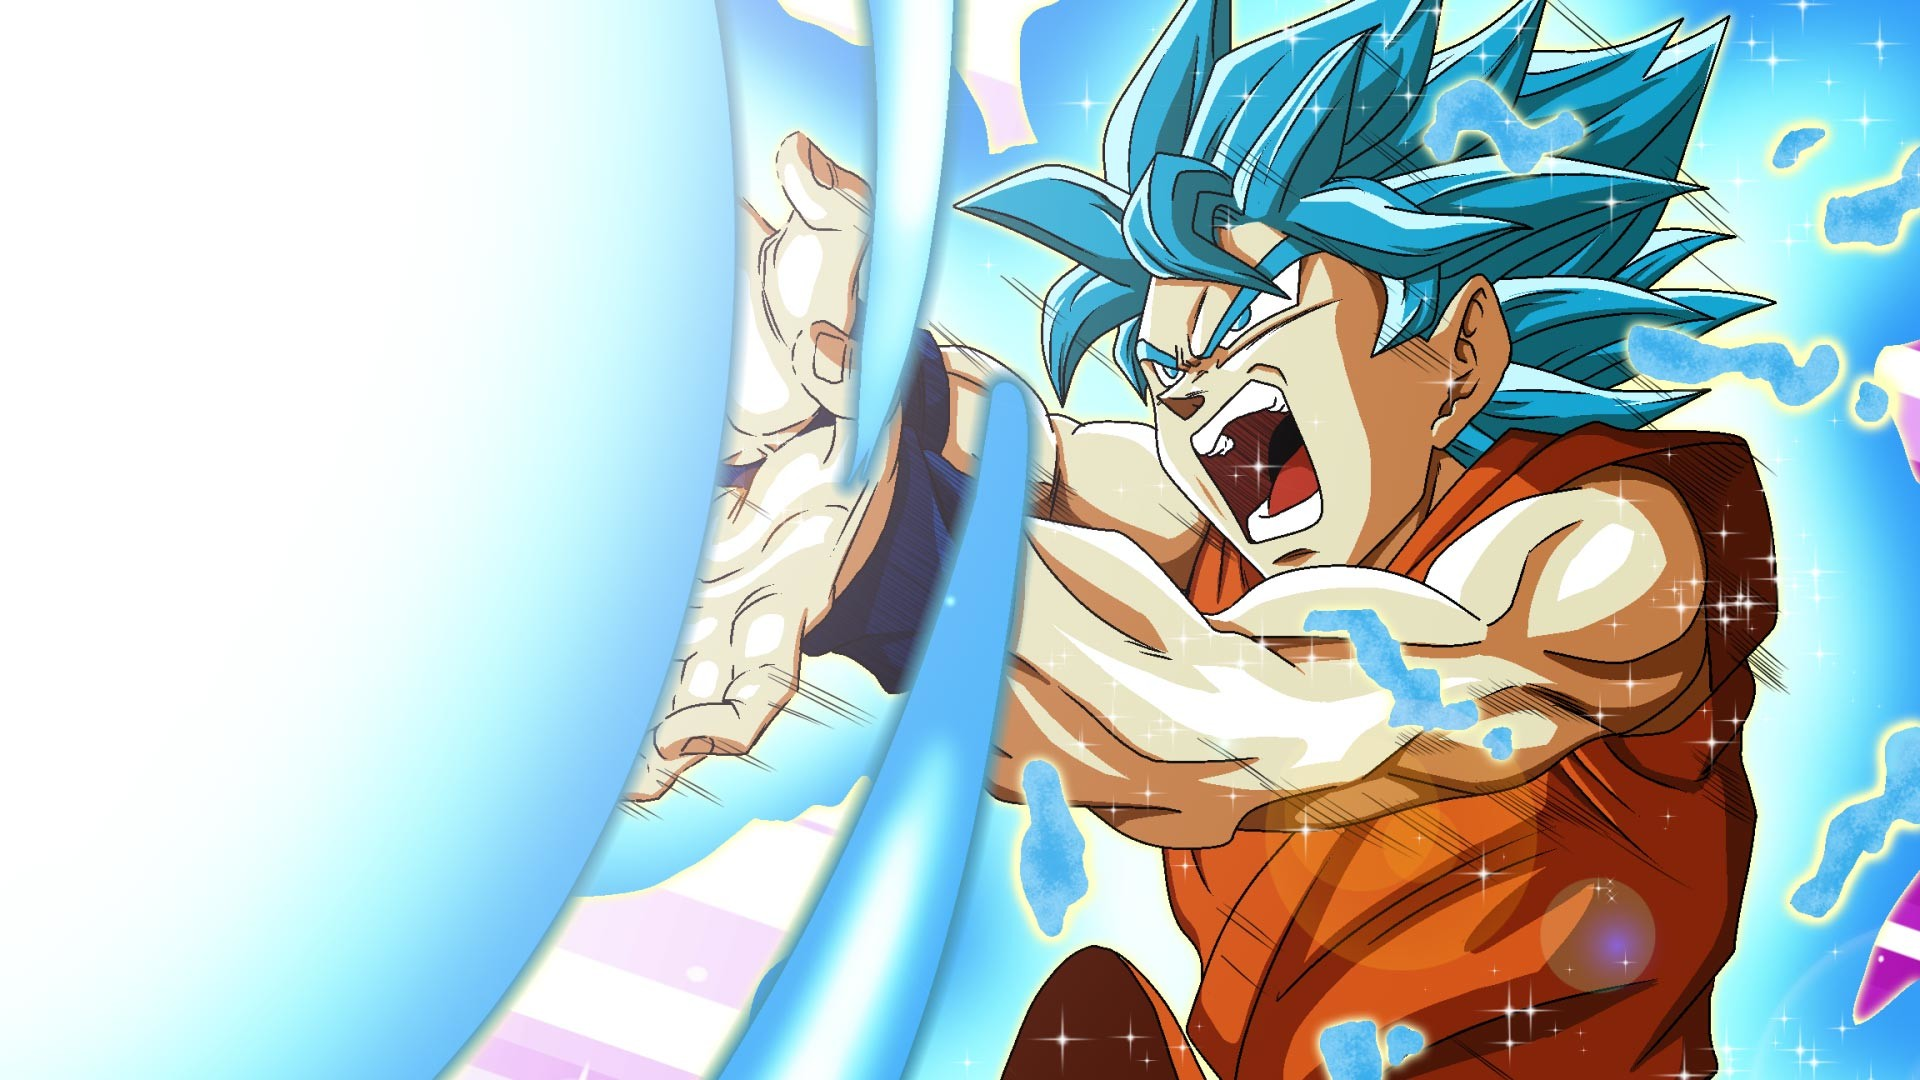 … Super Saiyan God Super Saiyan and fighting new opponents from other  universes, dimensions and timelines. You'll find various popular characters  like …